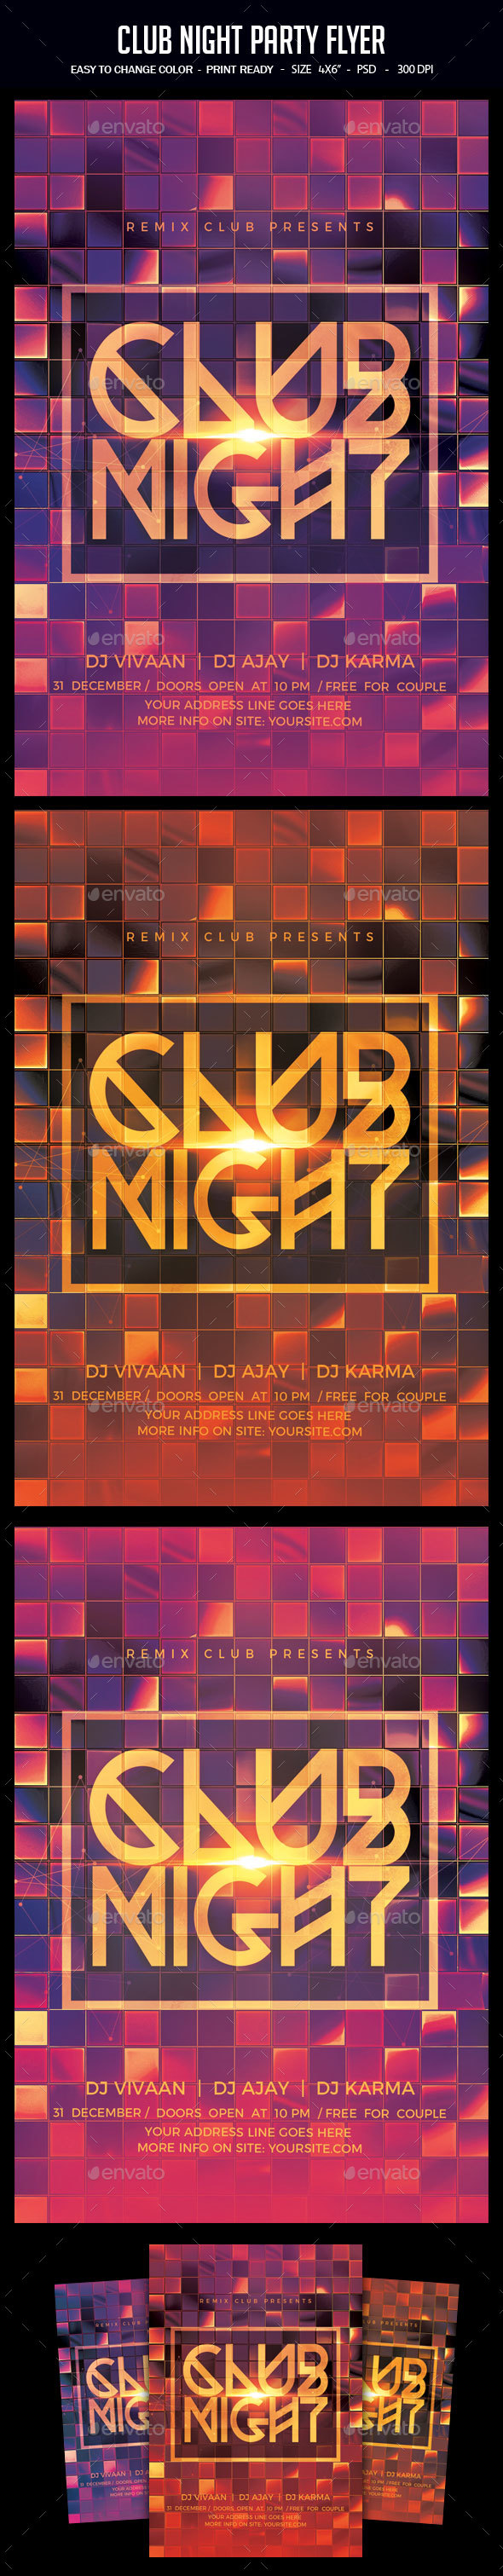 GraphicRiver Club Night Party Flyer 20955713